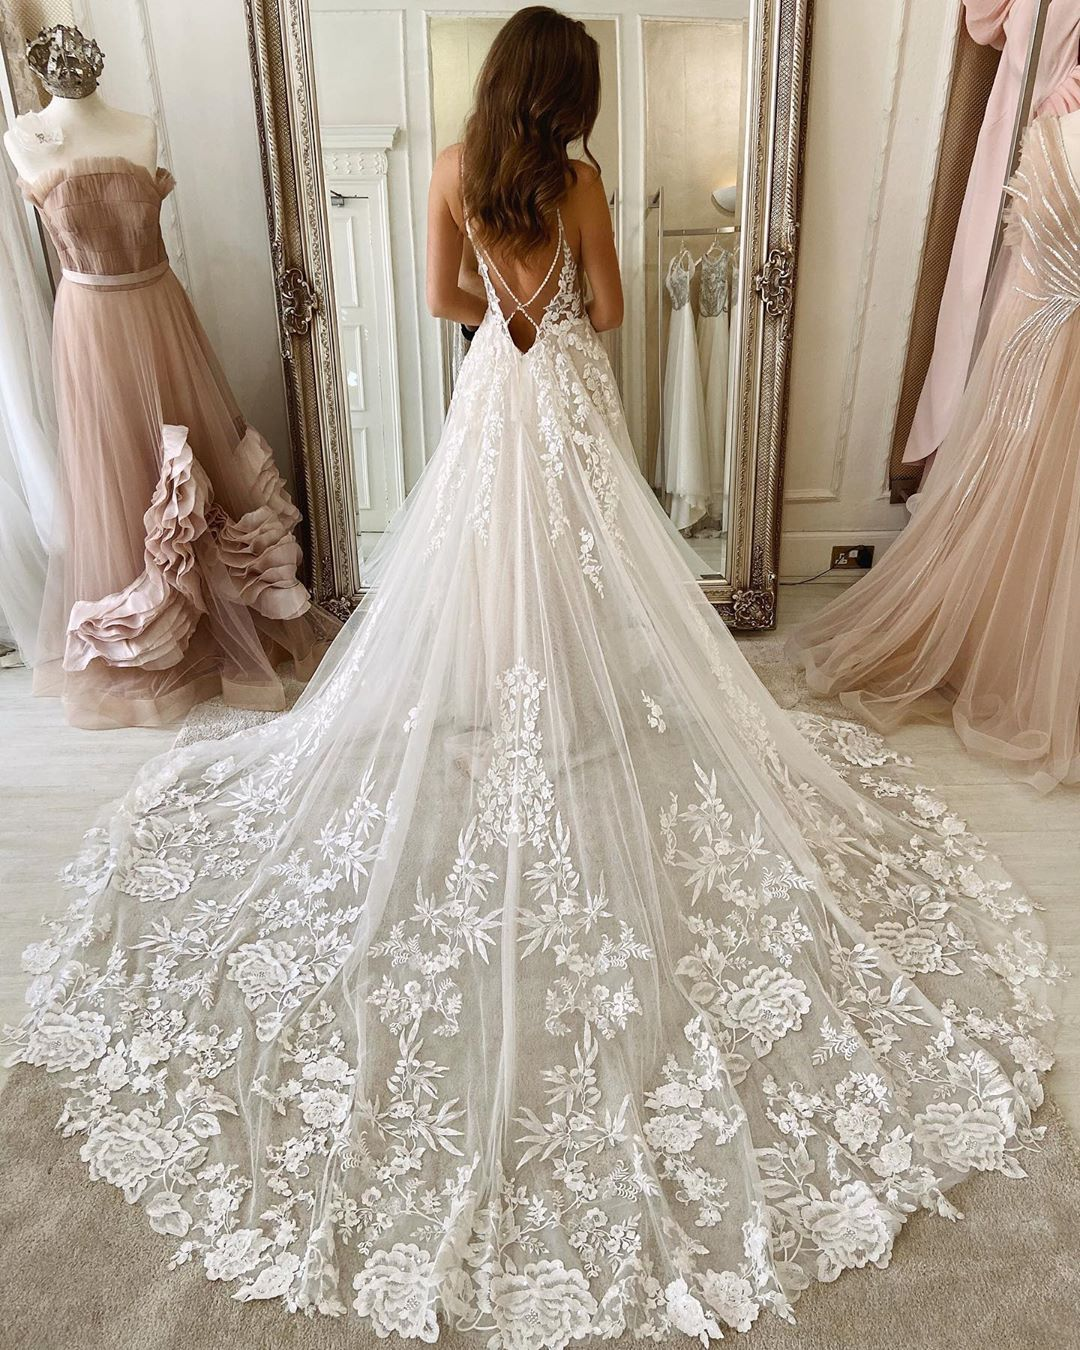 Eleganza Sposa On Instagram So We Might Just Be A Little Bit Obsessed With Our New Gown A Wedding Dresses Lace Country Style Wedding Dresses Wedding Dresses [ 1350 x 1080 Pixel ]